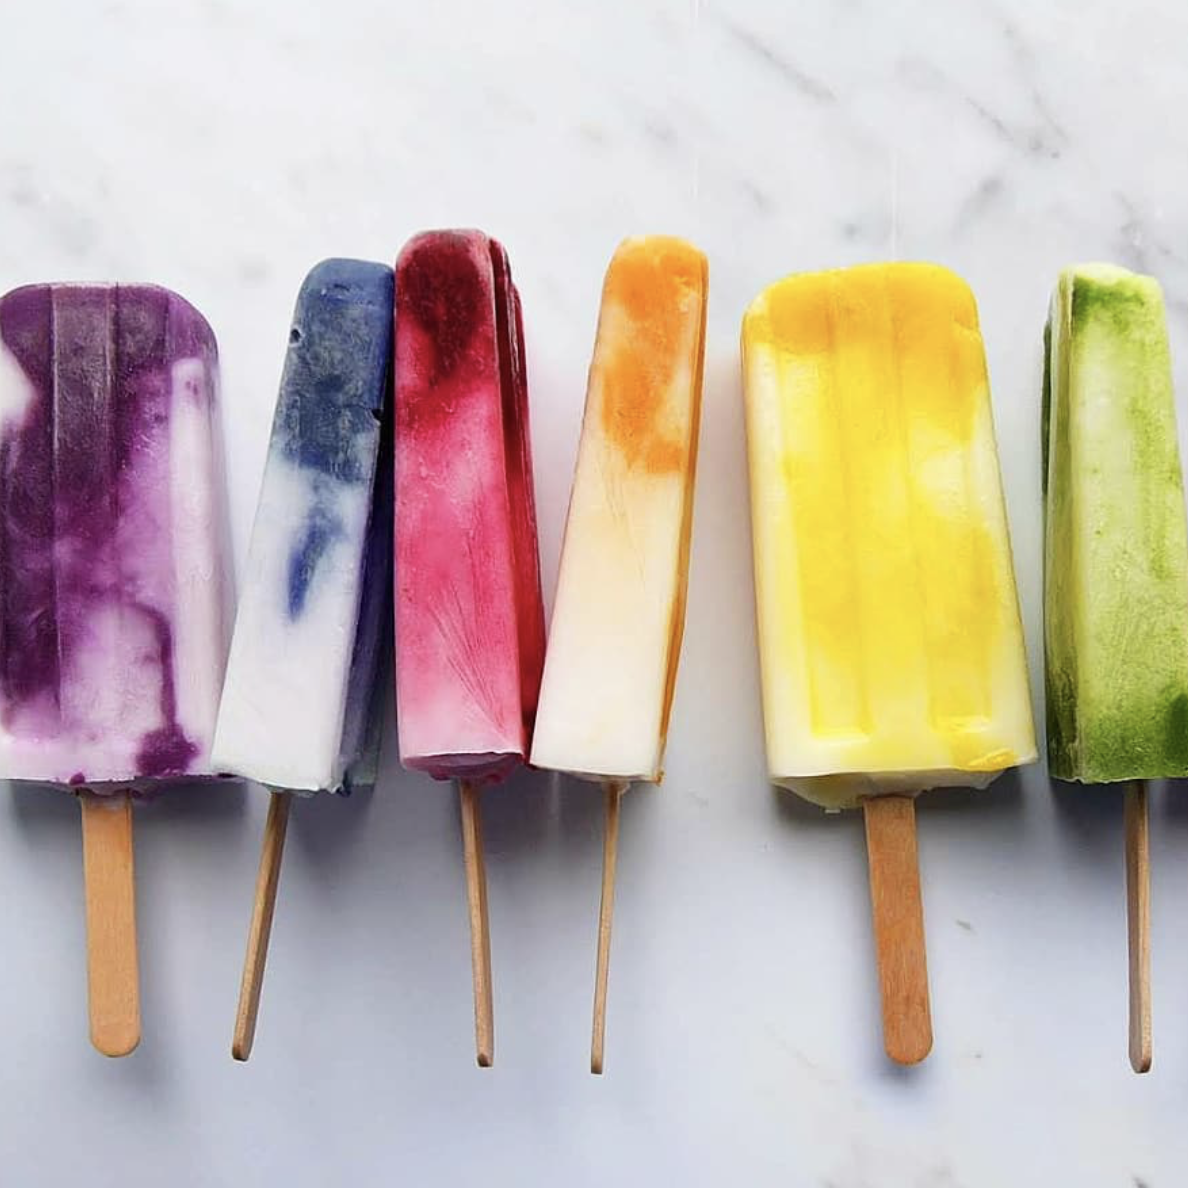 Assorted Colorful Coconut Ice Pops